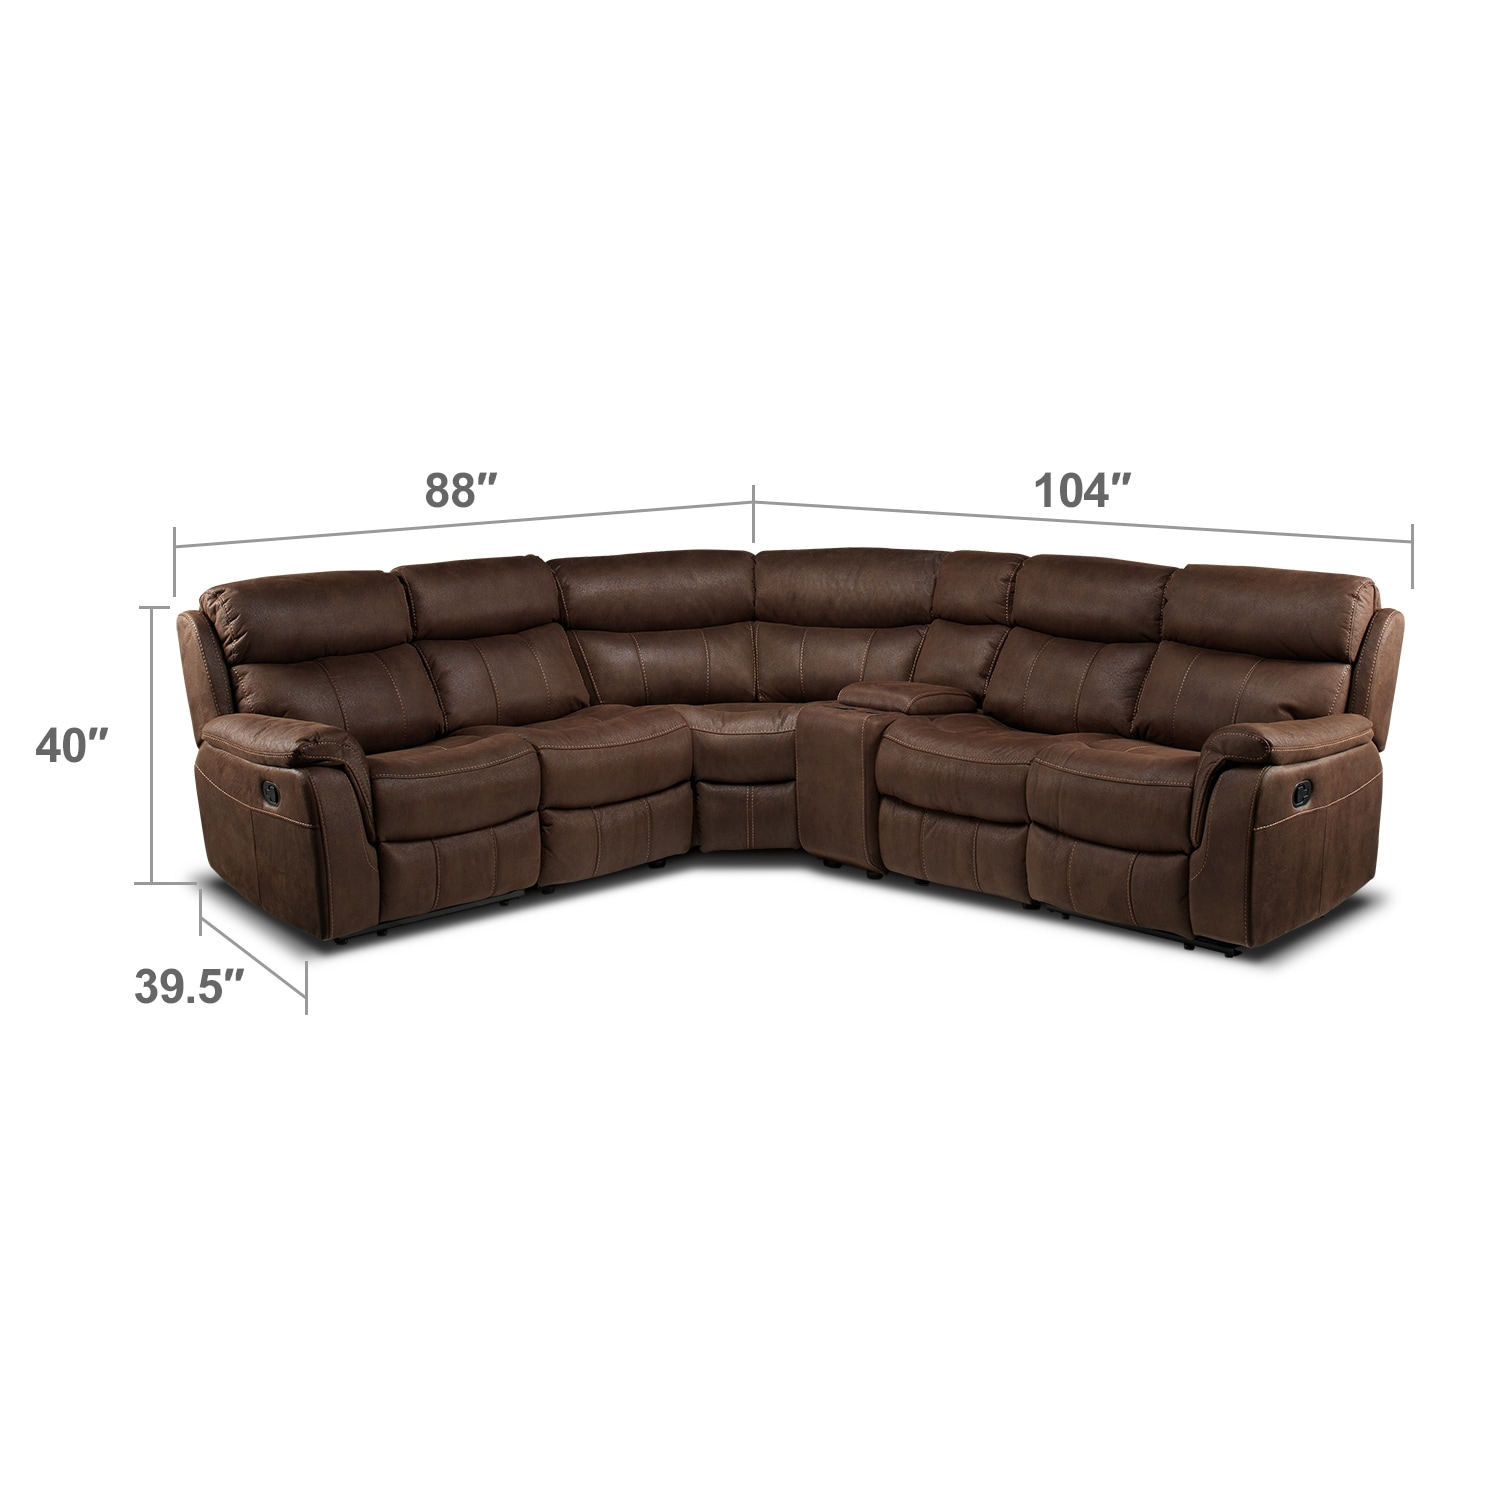 Brick Meubles Divan Lit Small Sectional Sofa Leon S Stellar